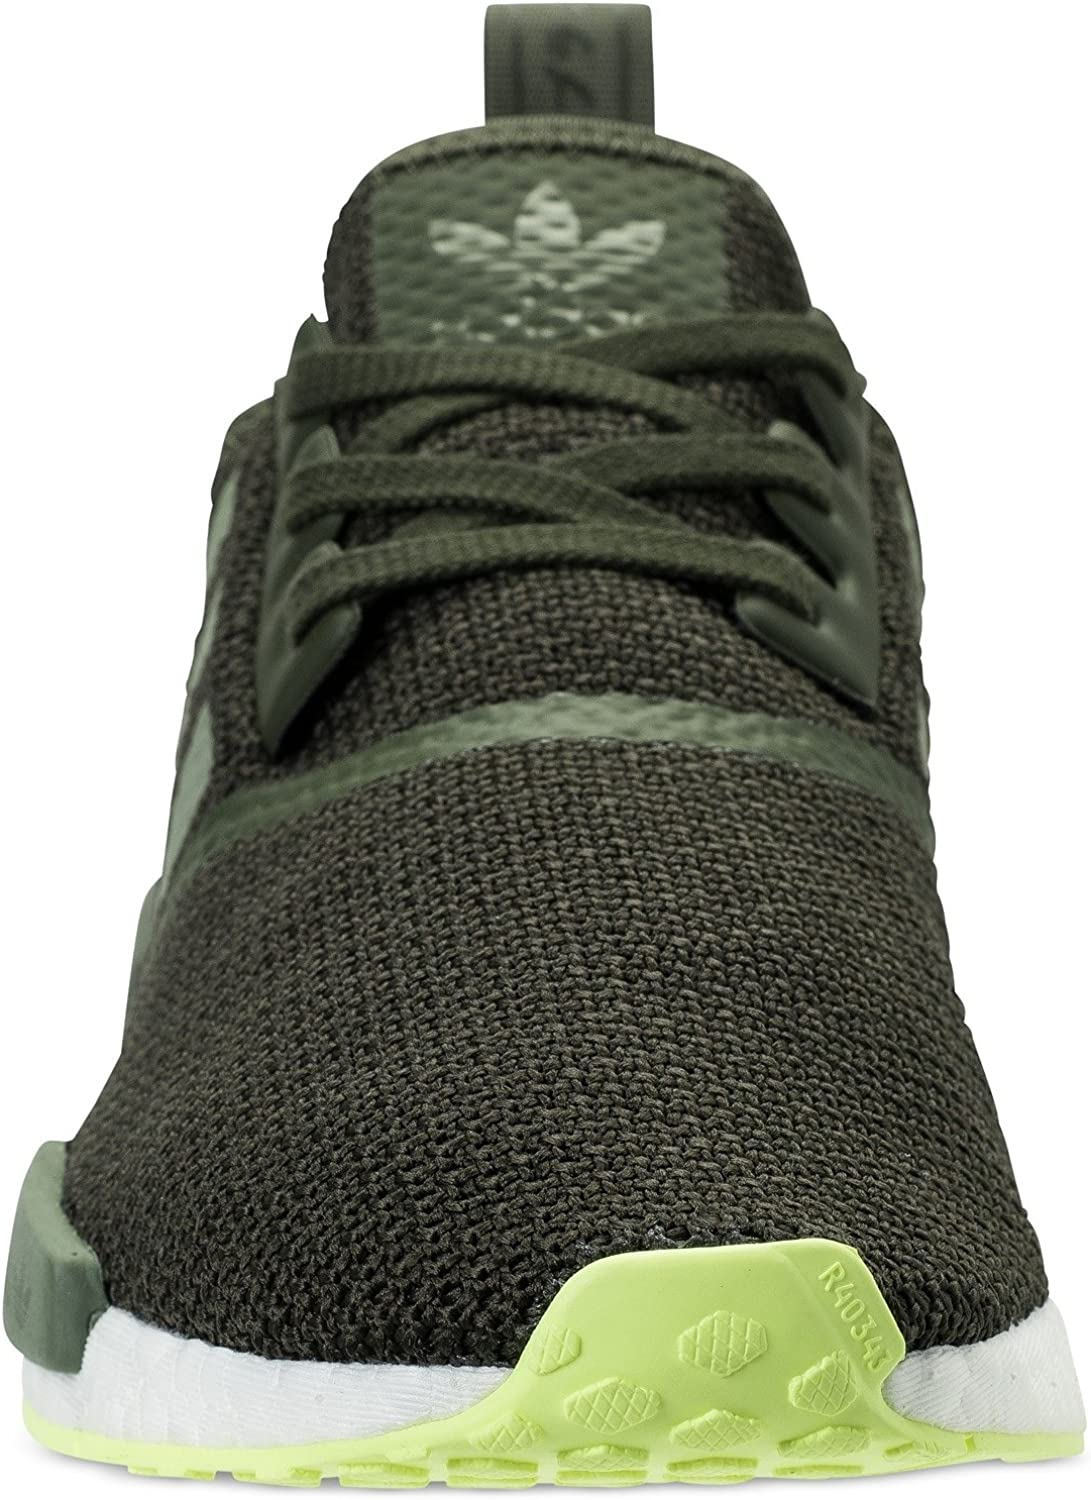 Adidas NMD R1 Basket Mode Homme Night Cargo Base Green Semi Frozen Yellow